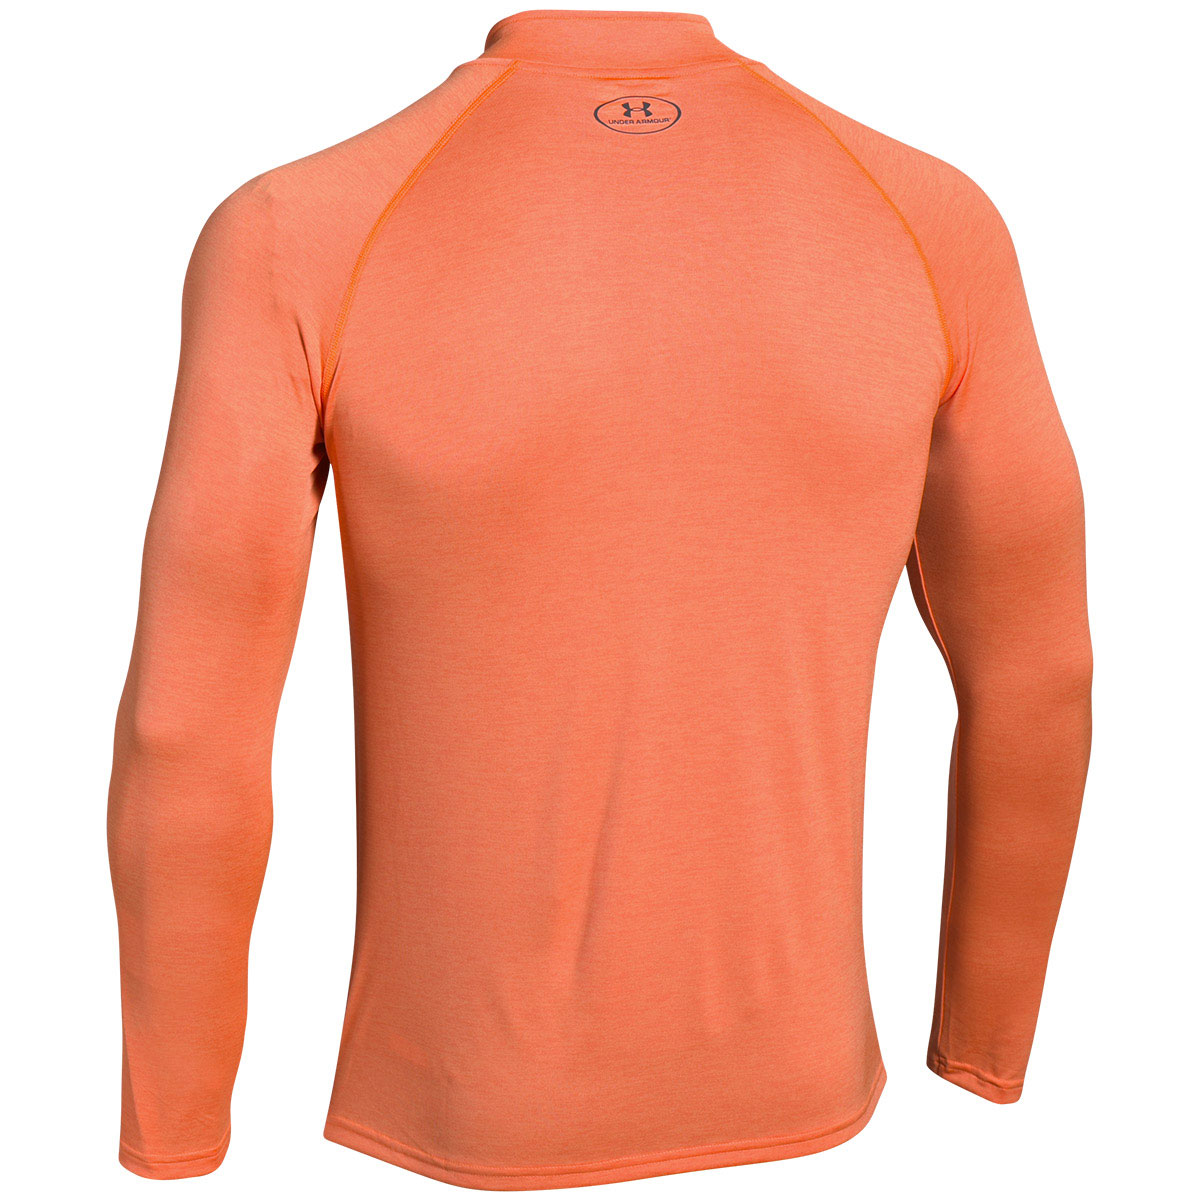 Under-Armour-Mens-UA-Tech-1-4-Zip-Long-Sleeve-Top-Workout-Layer-27-OFF-RRP thumbnail 15